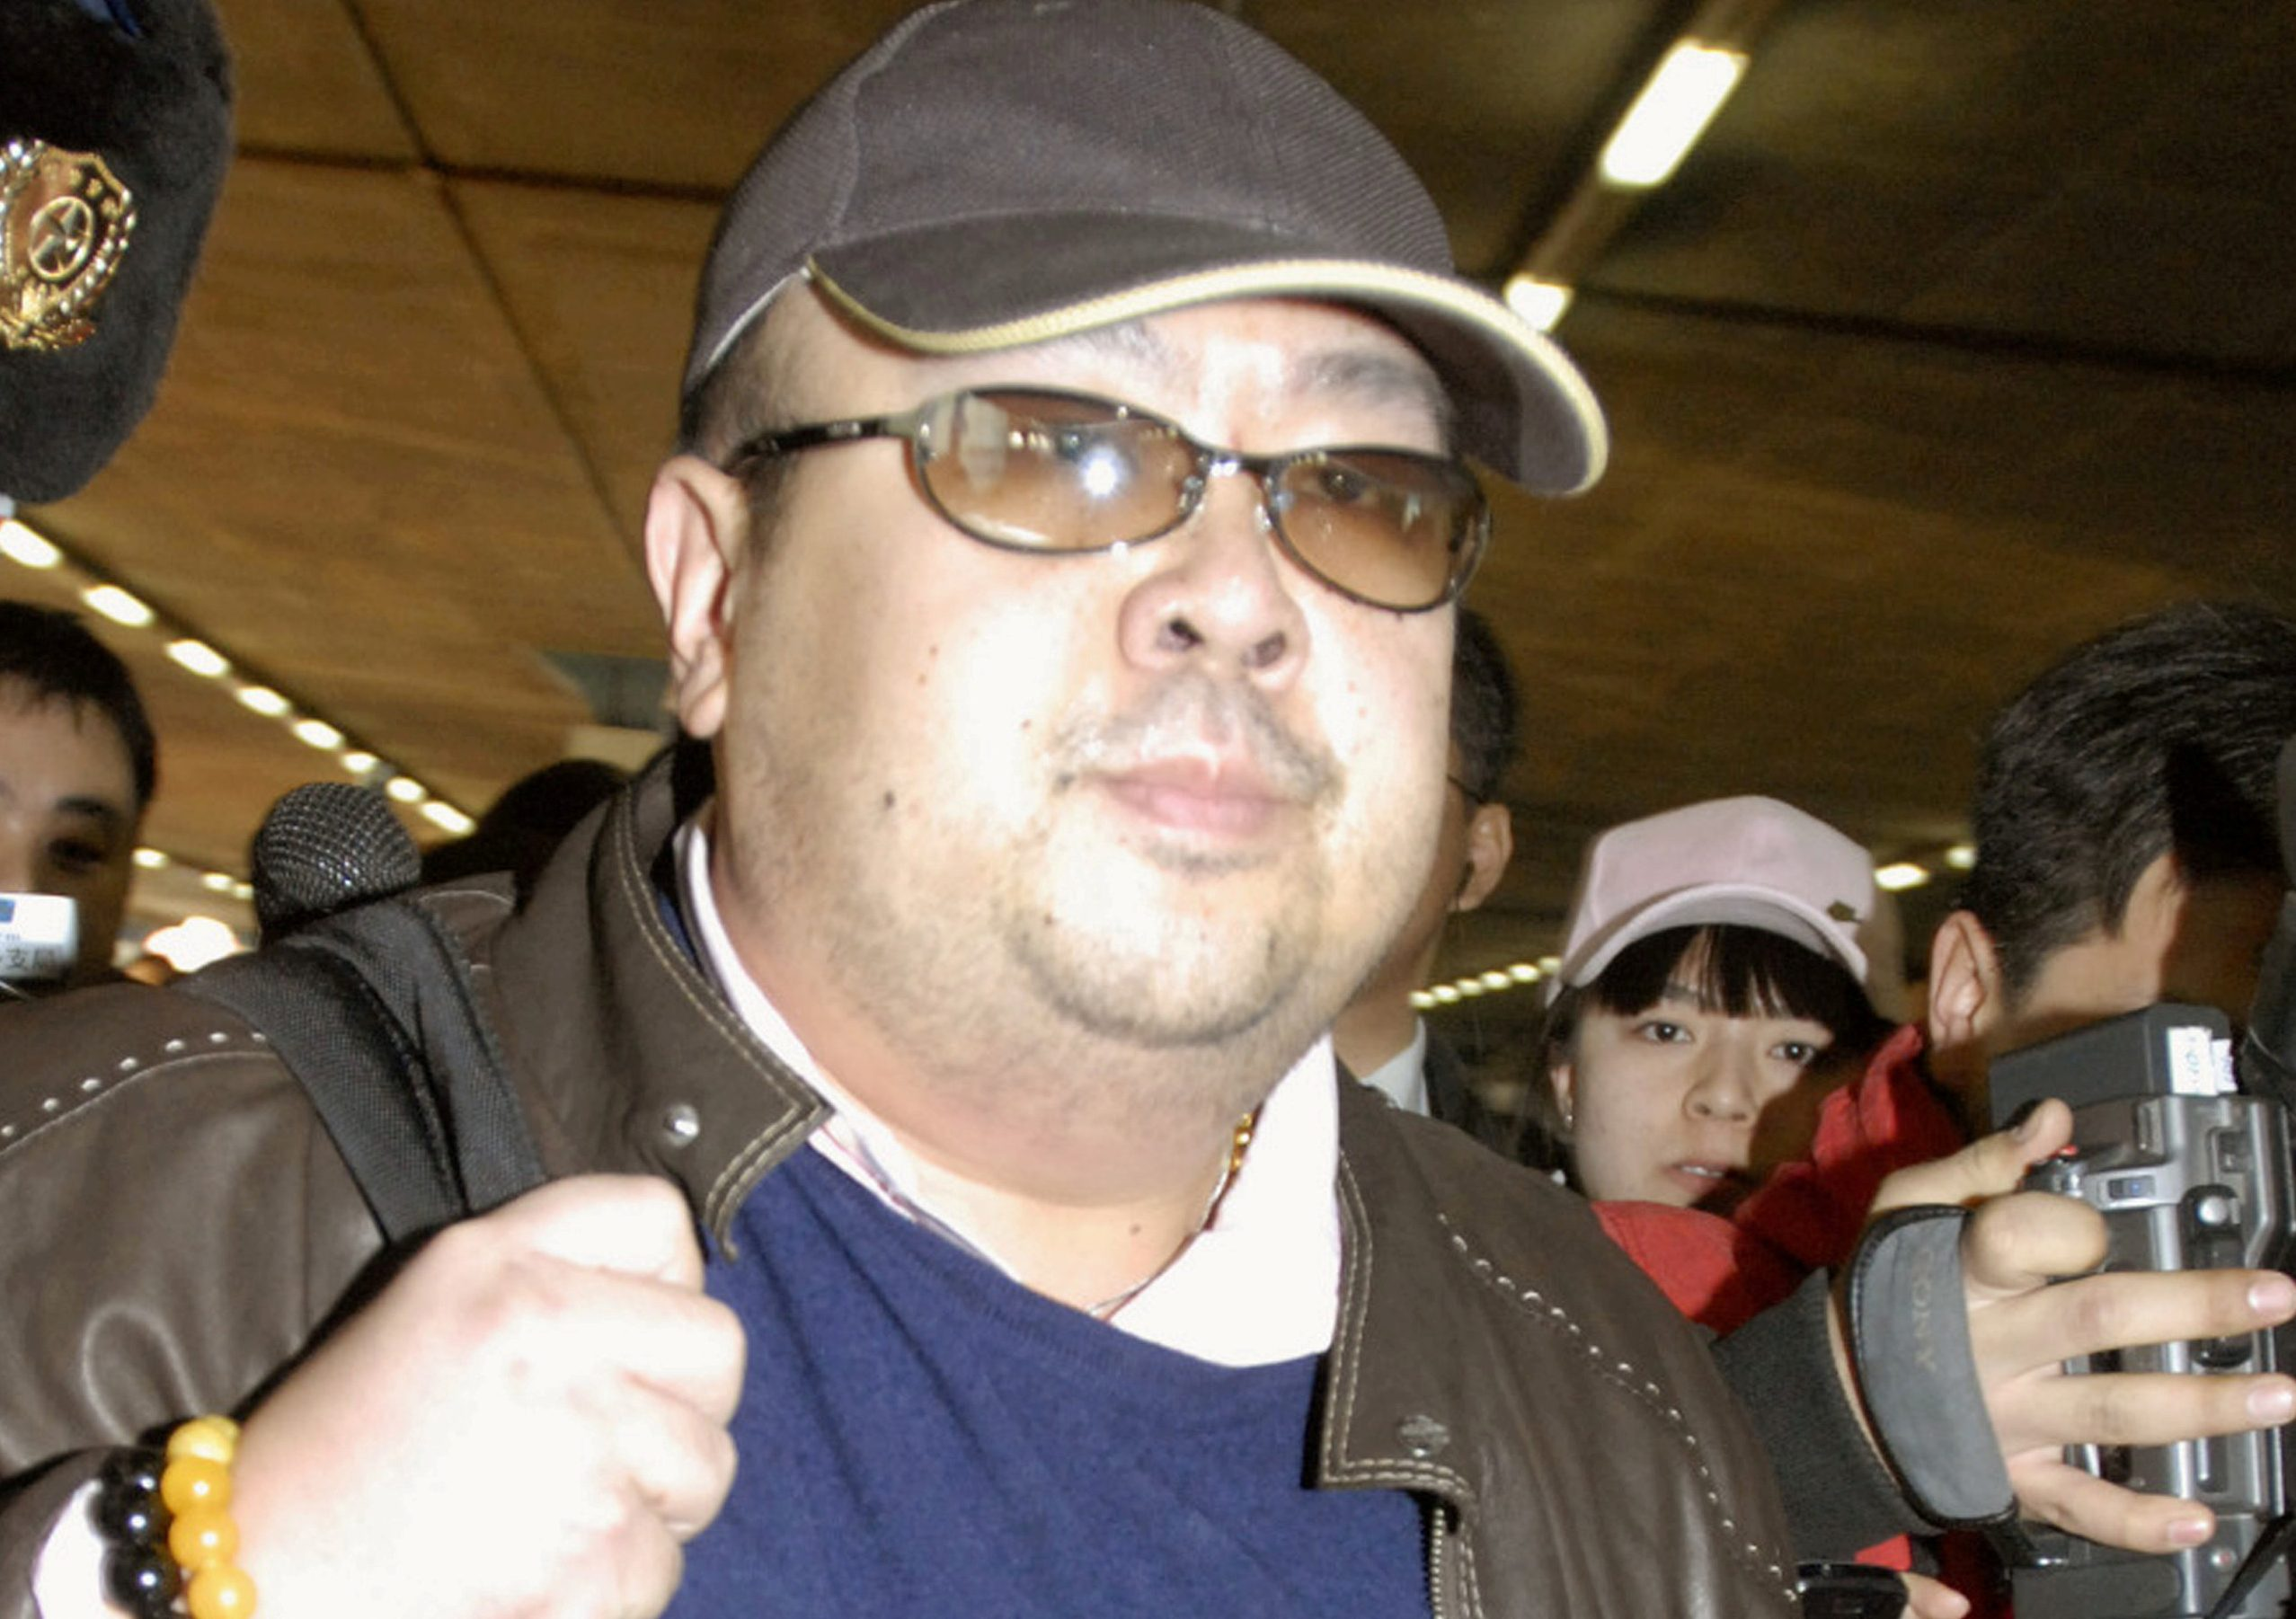 Two women deny murdering North Korean leader's half-brother